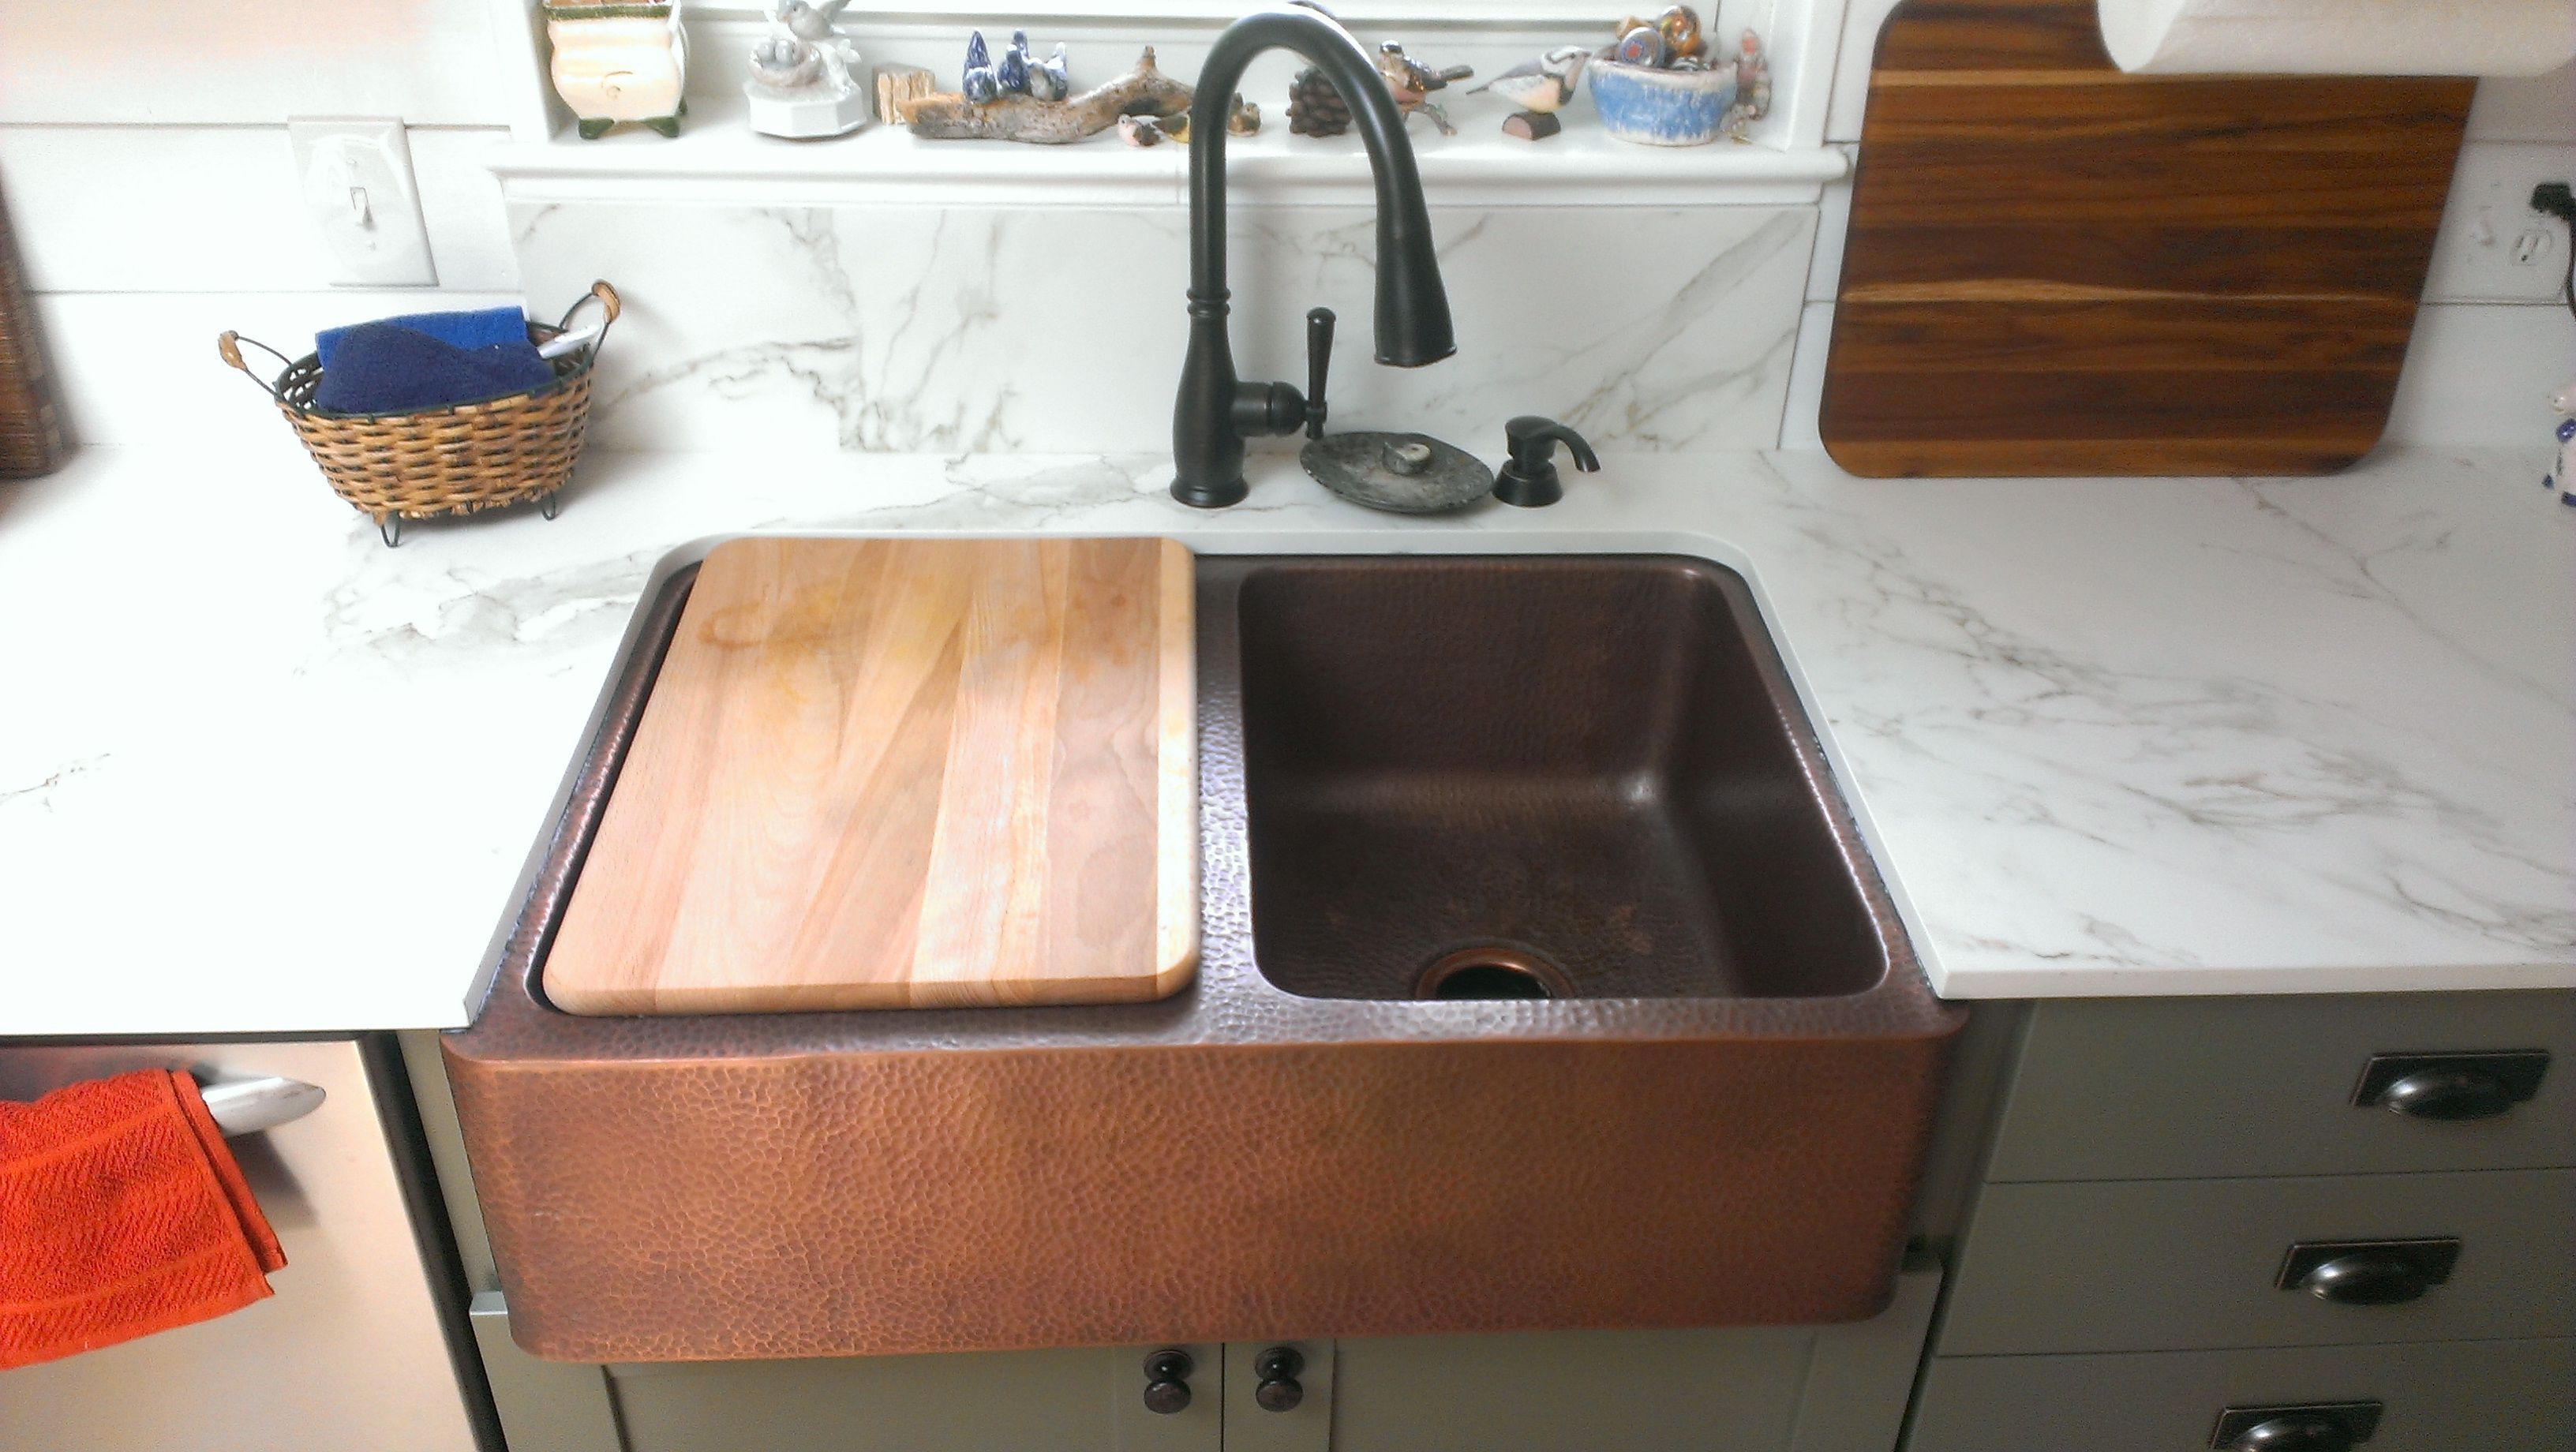 Copper Farmhouse Sink By Sinkology Purchased From Home Depot And